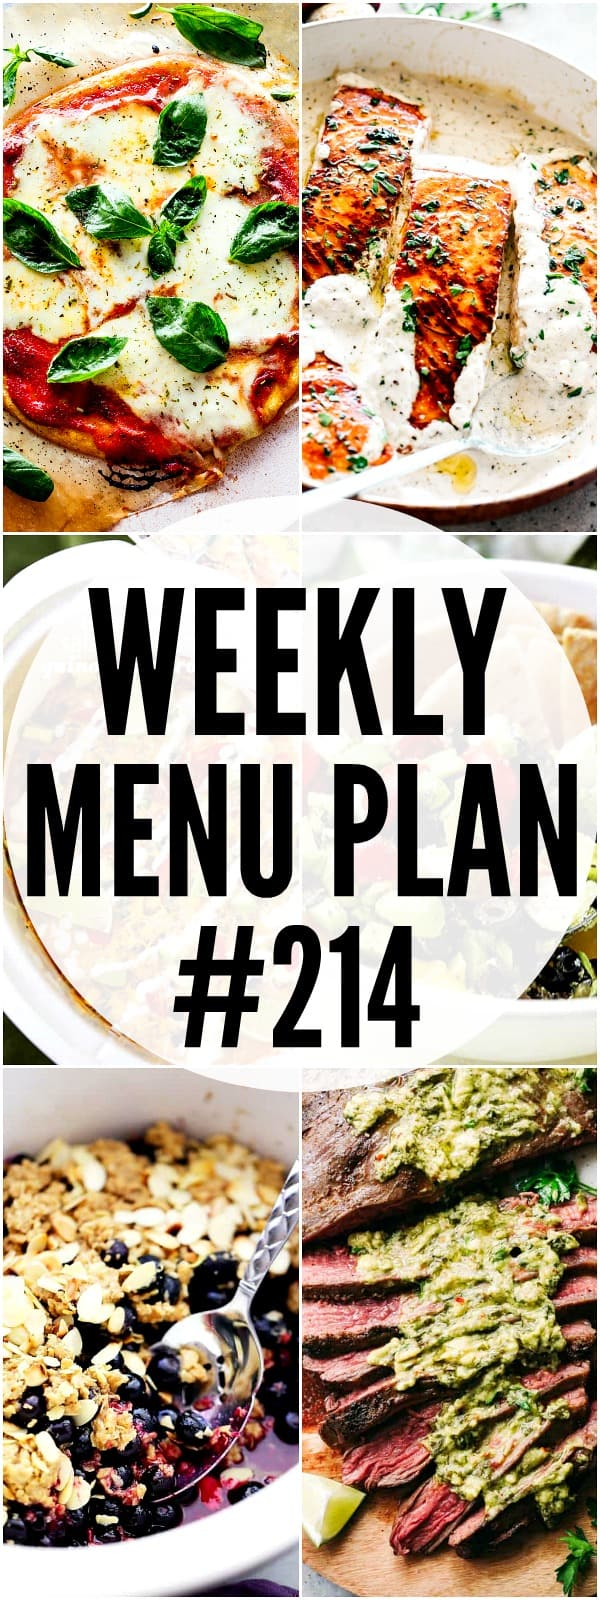 WEEKLY MENU PLAN #214 PIN IMAGE